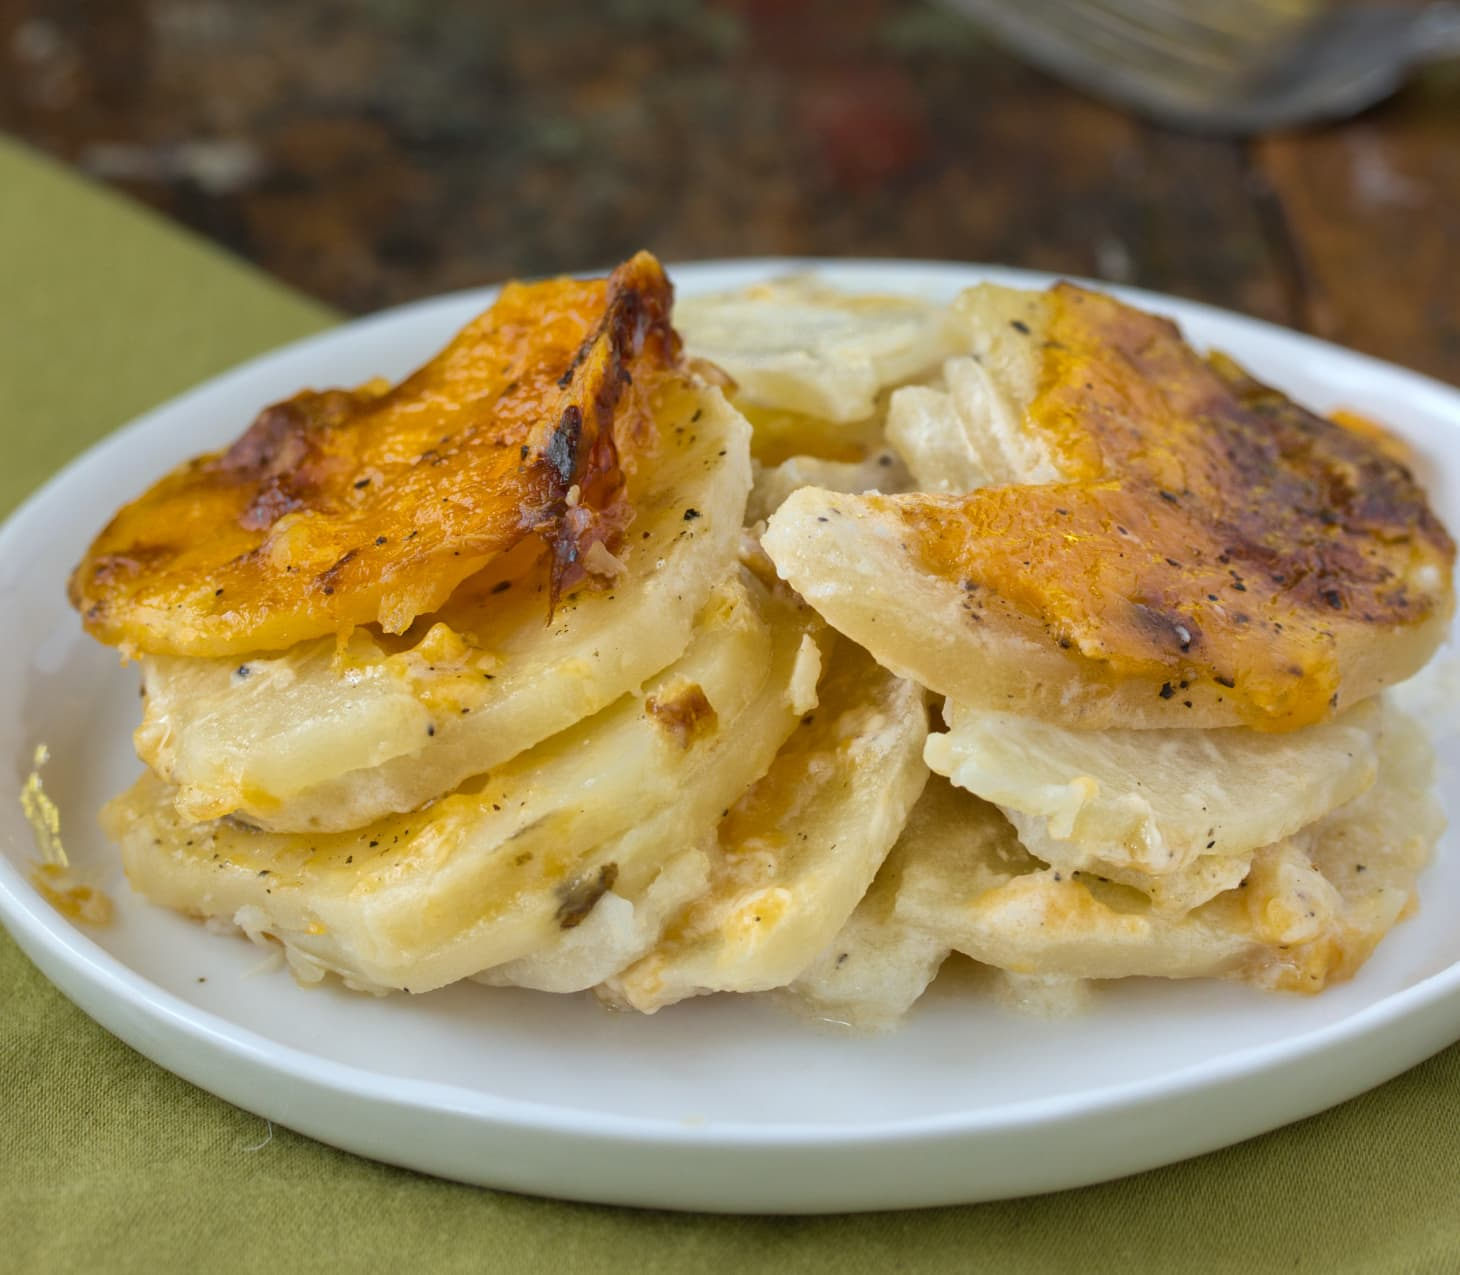 Recipe: Scalloped Potatoes With Onions And Cheddar Cheese